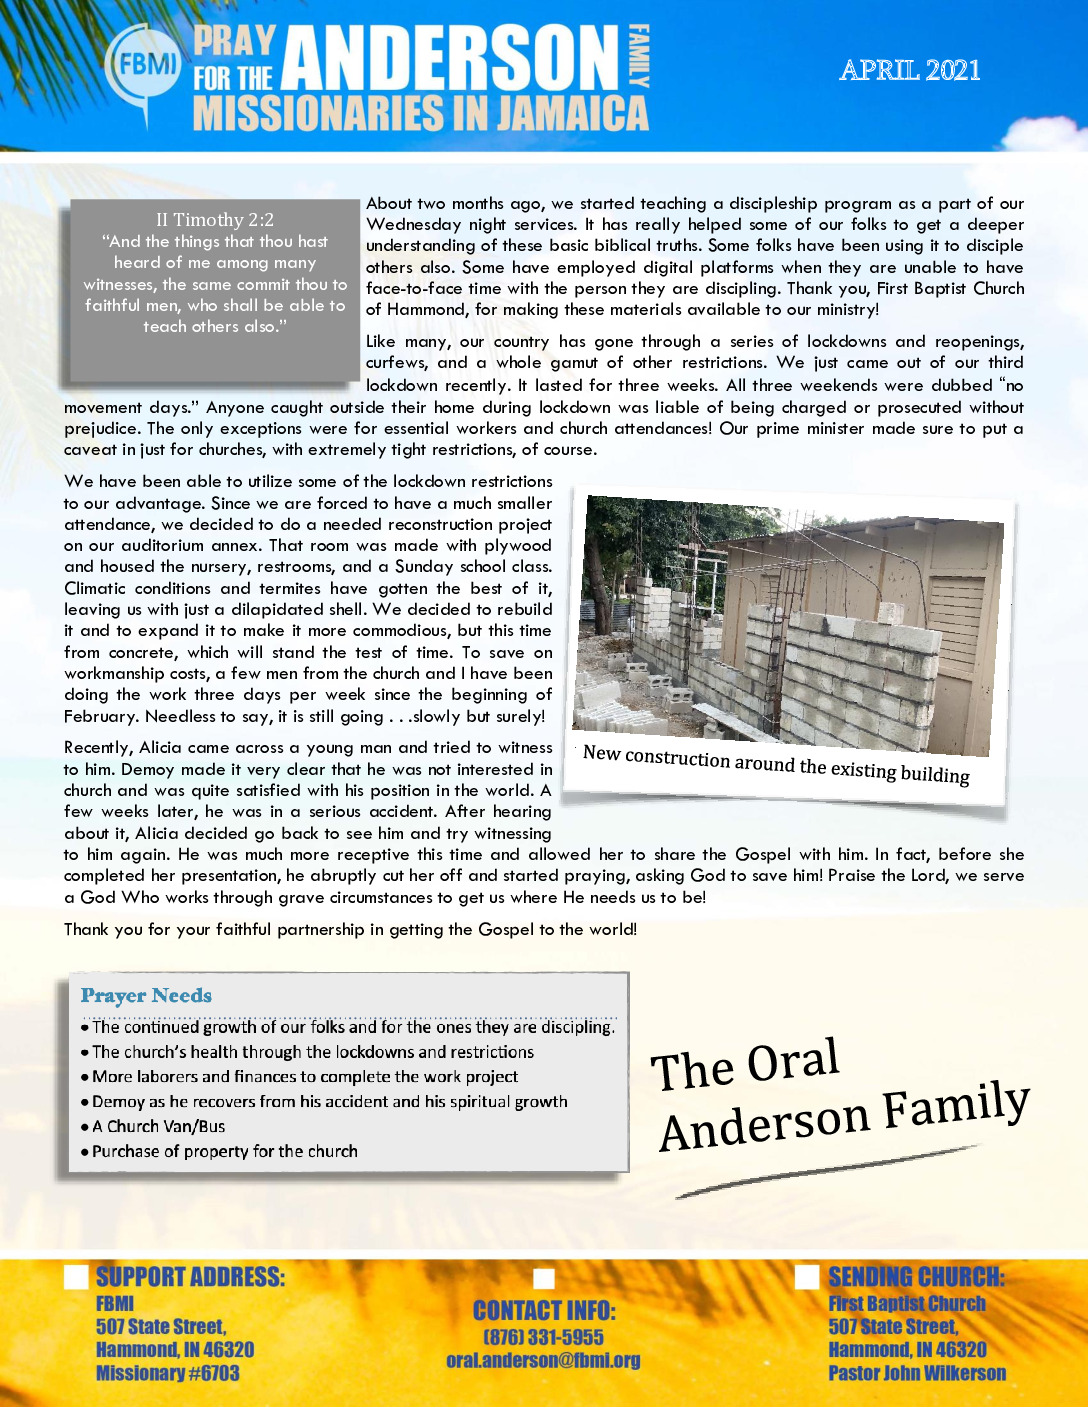 thumbnail of Oral Anderson April 2021 Prayer Letter